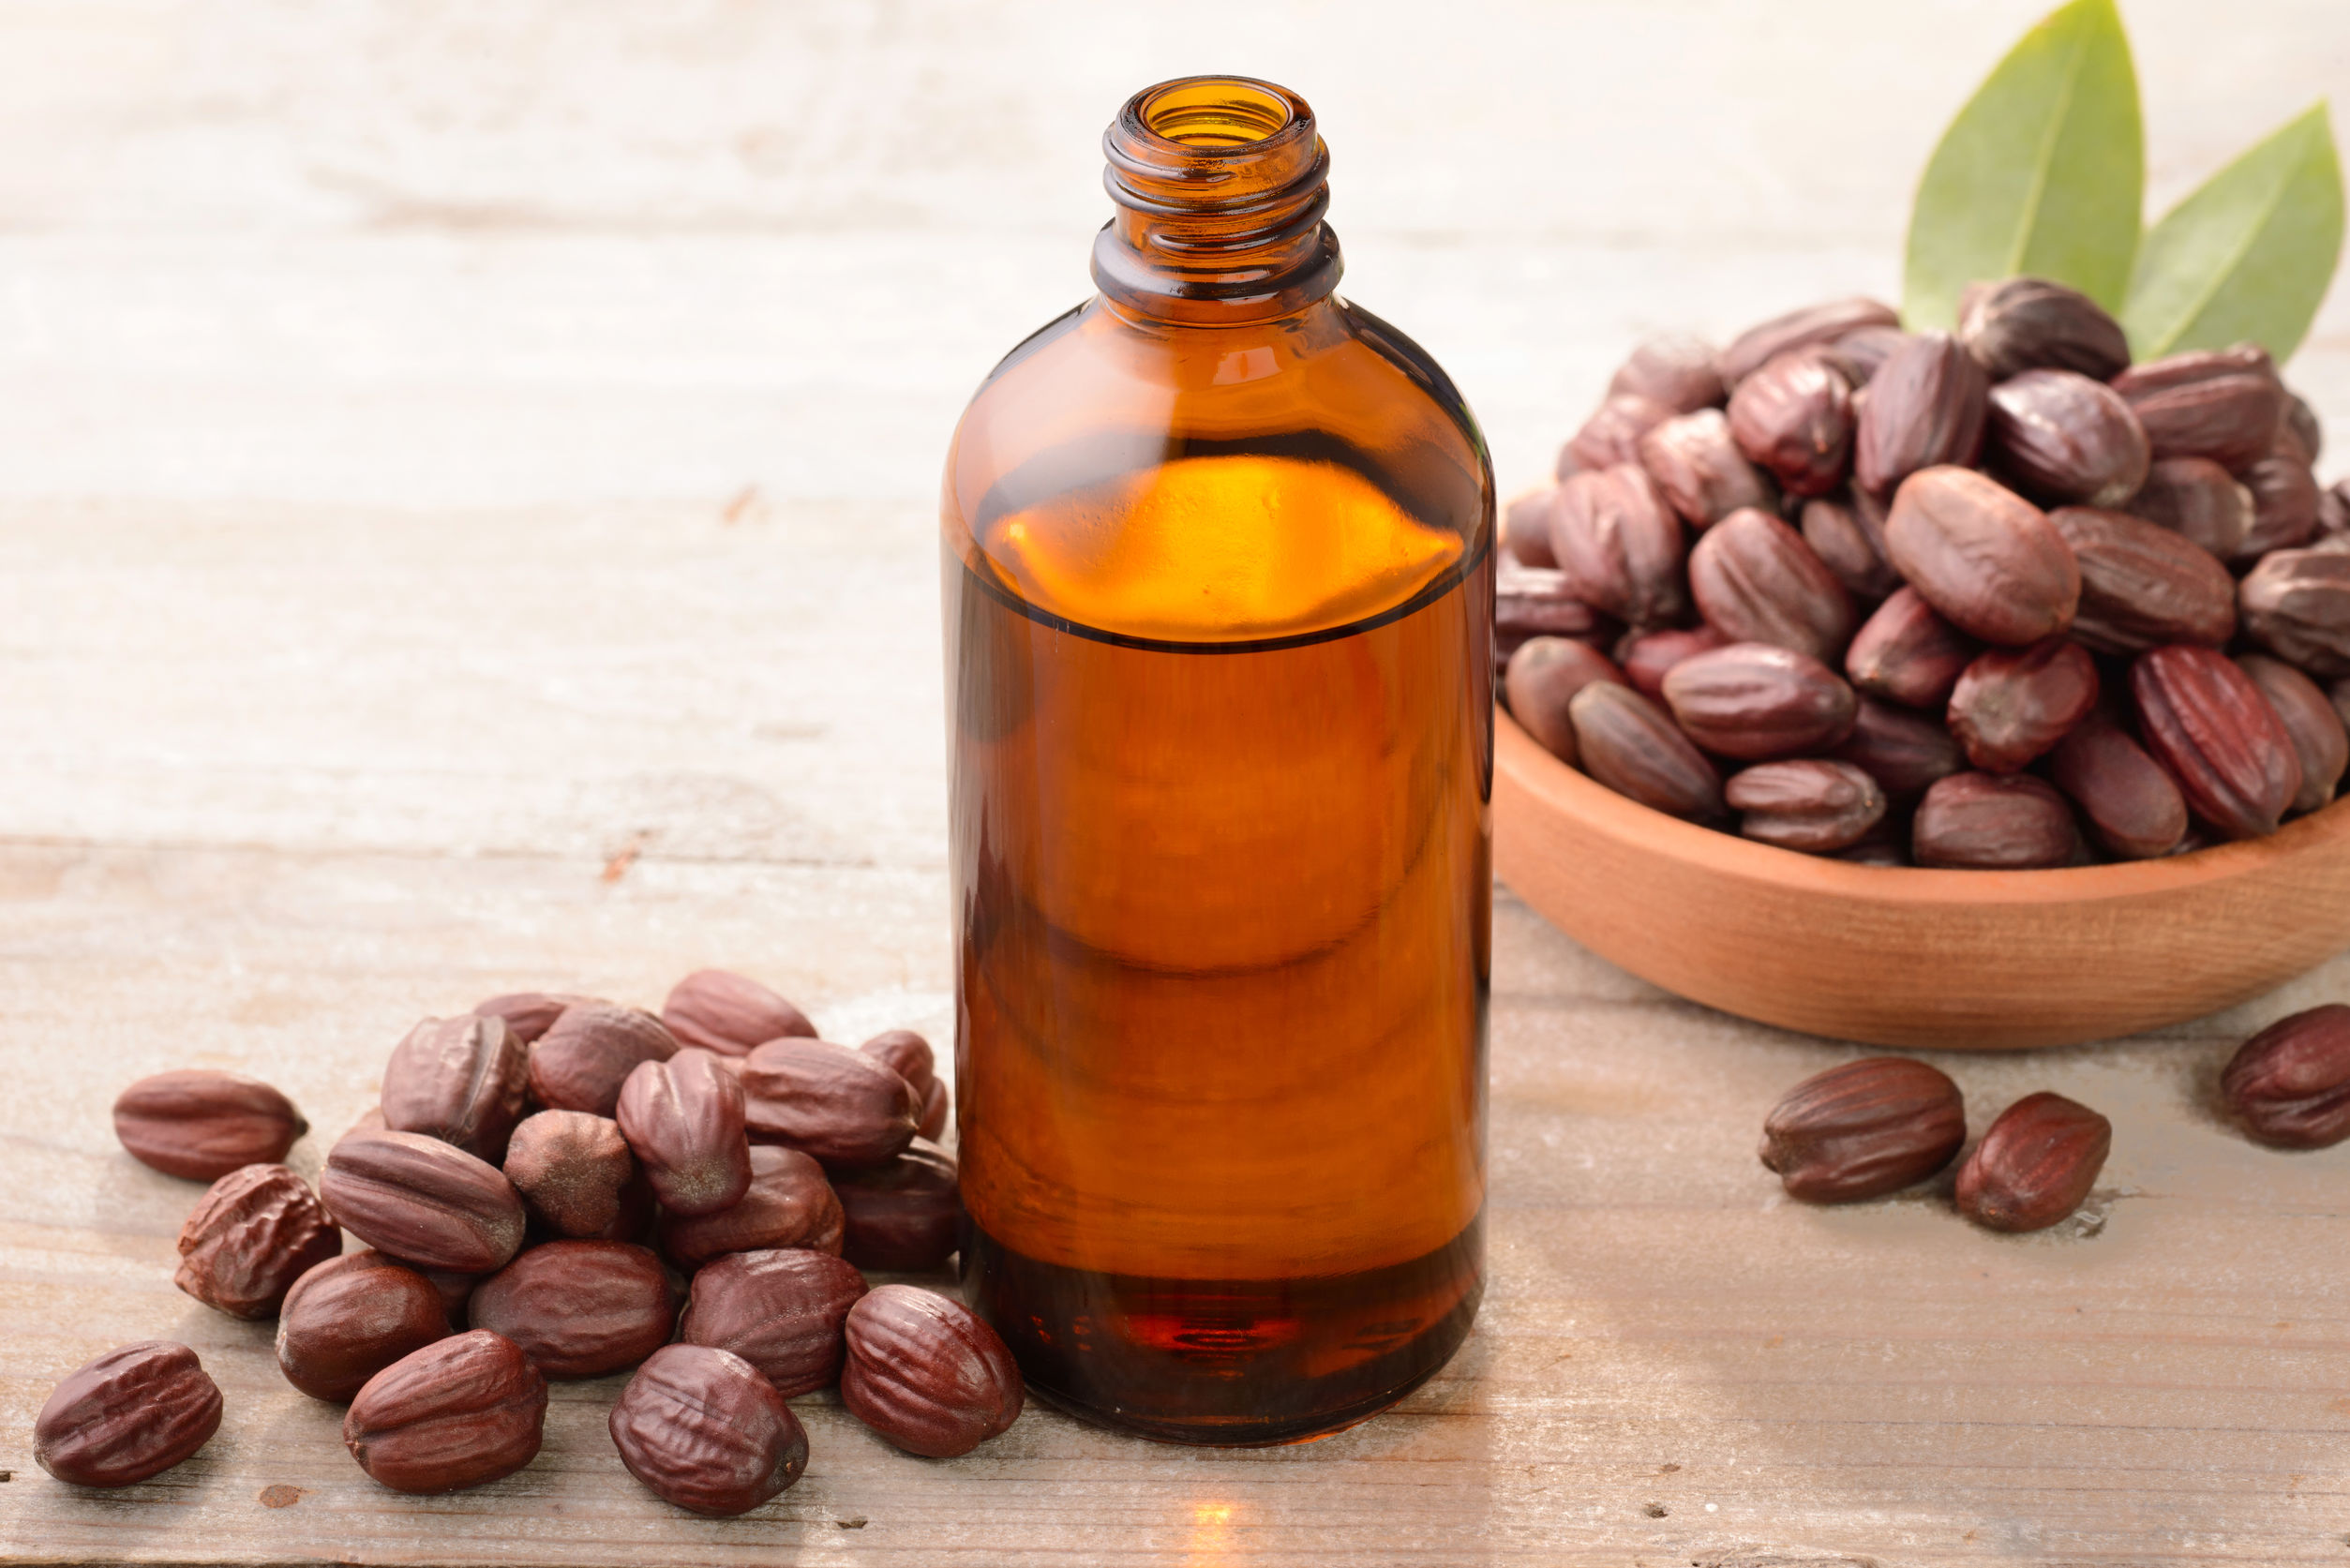 Best Jojoba Oil 2020: Shopping Guide & Review